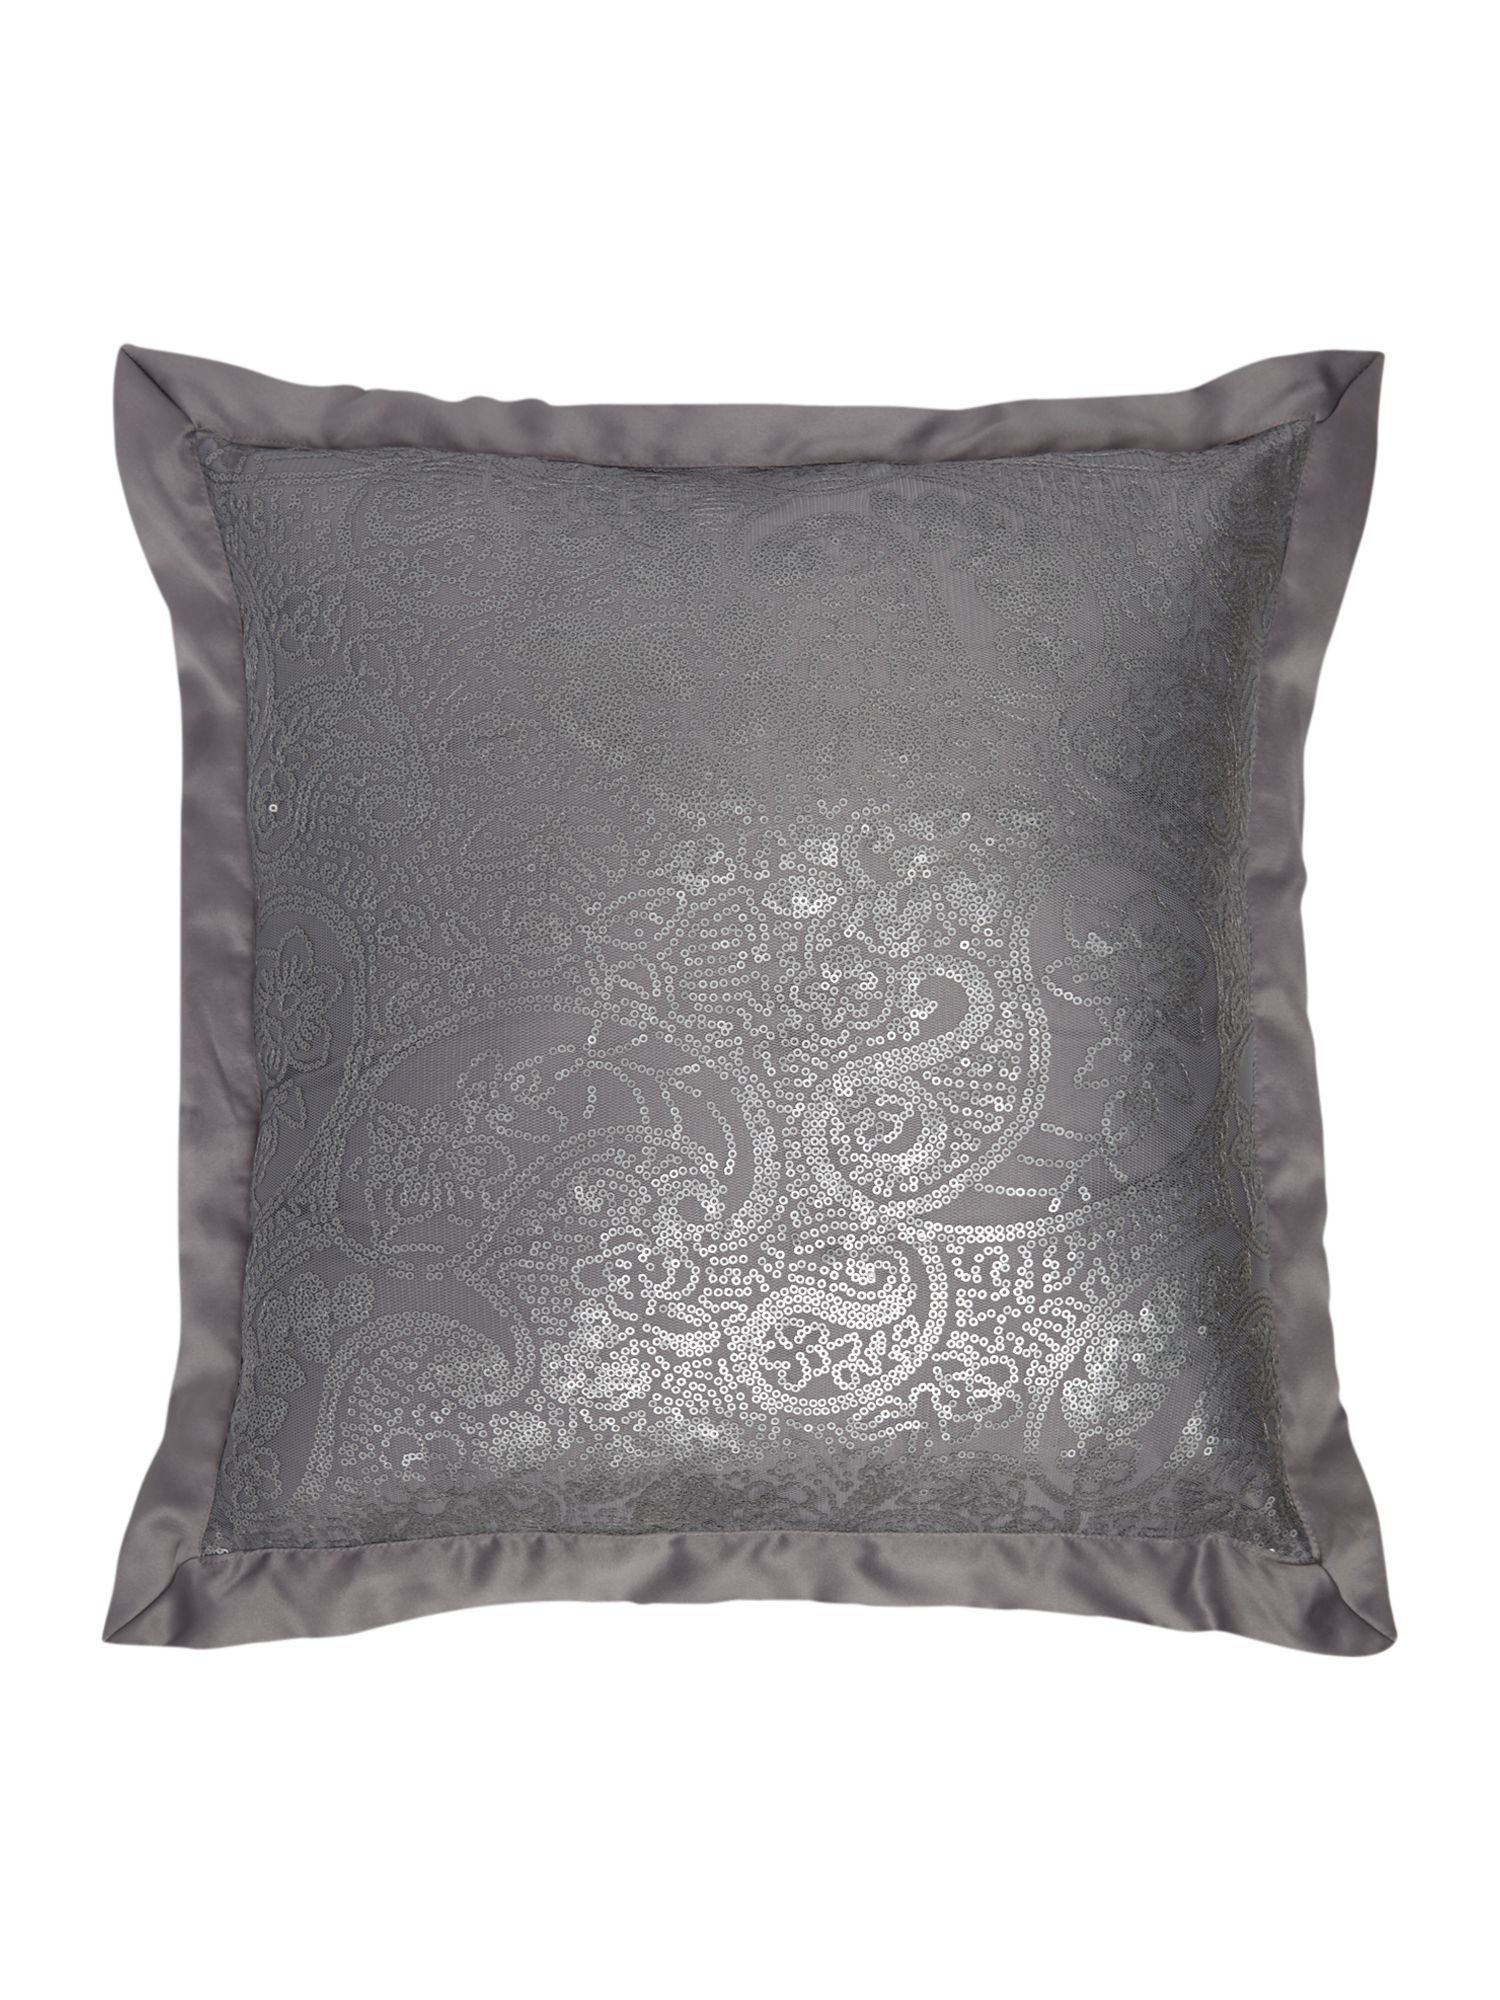 Allegra cushion